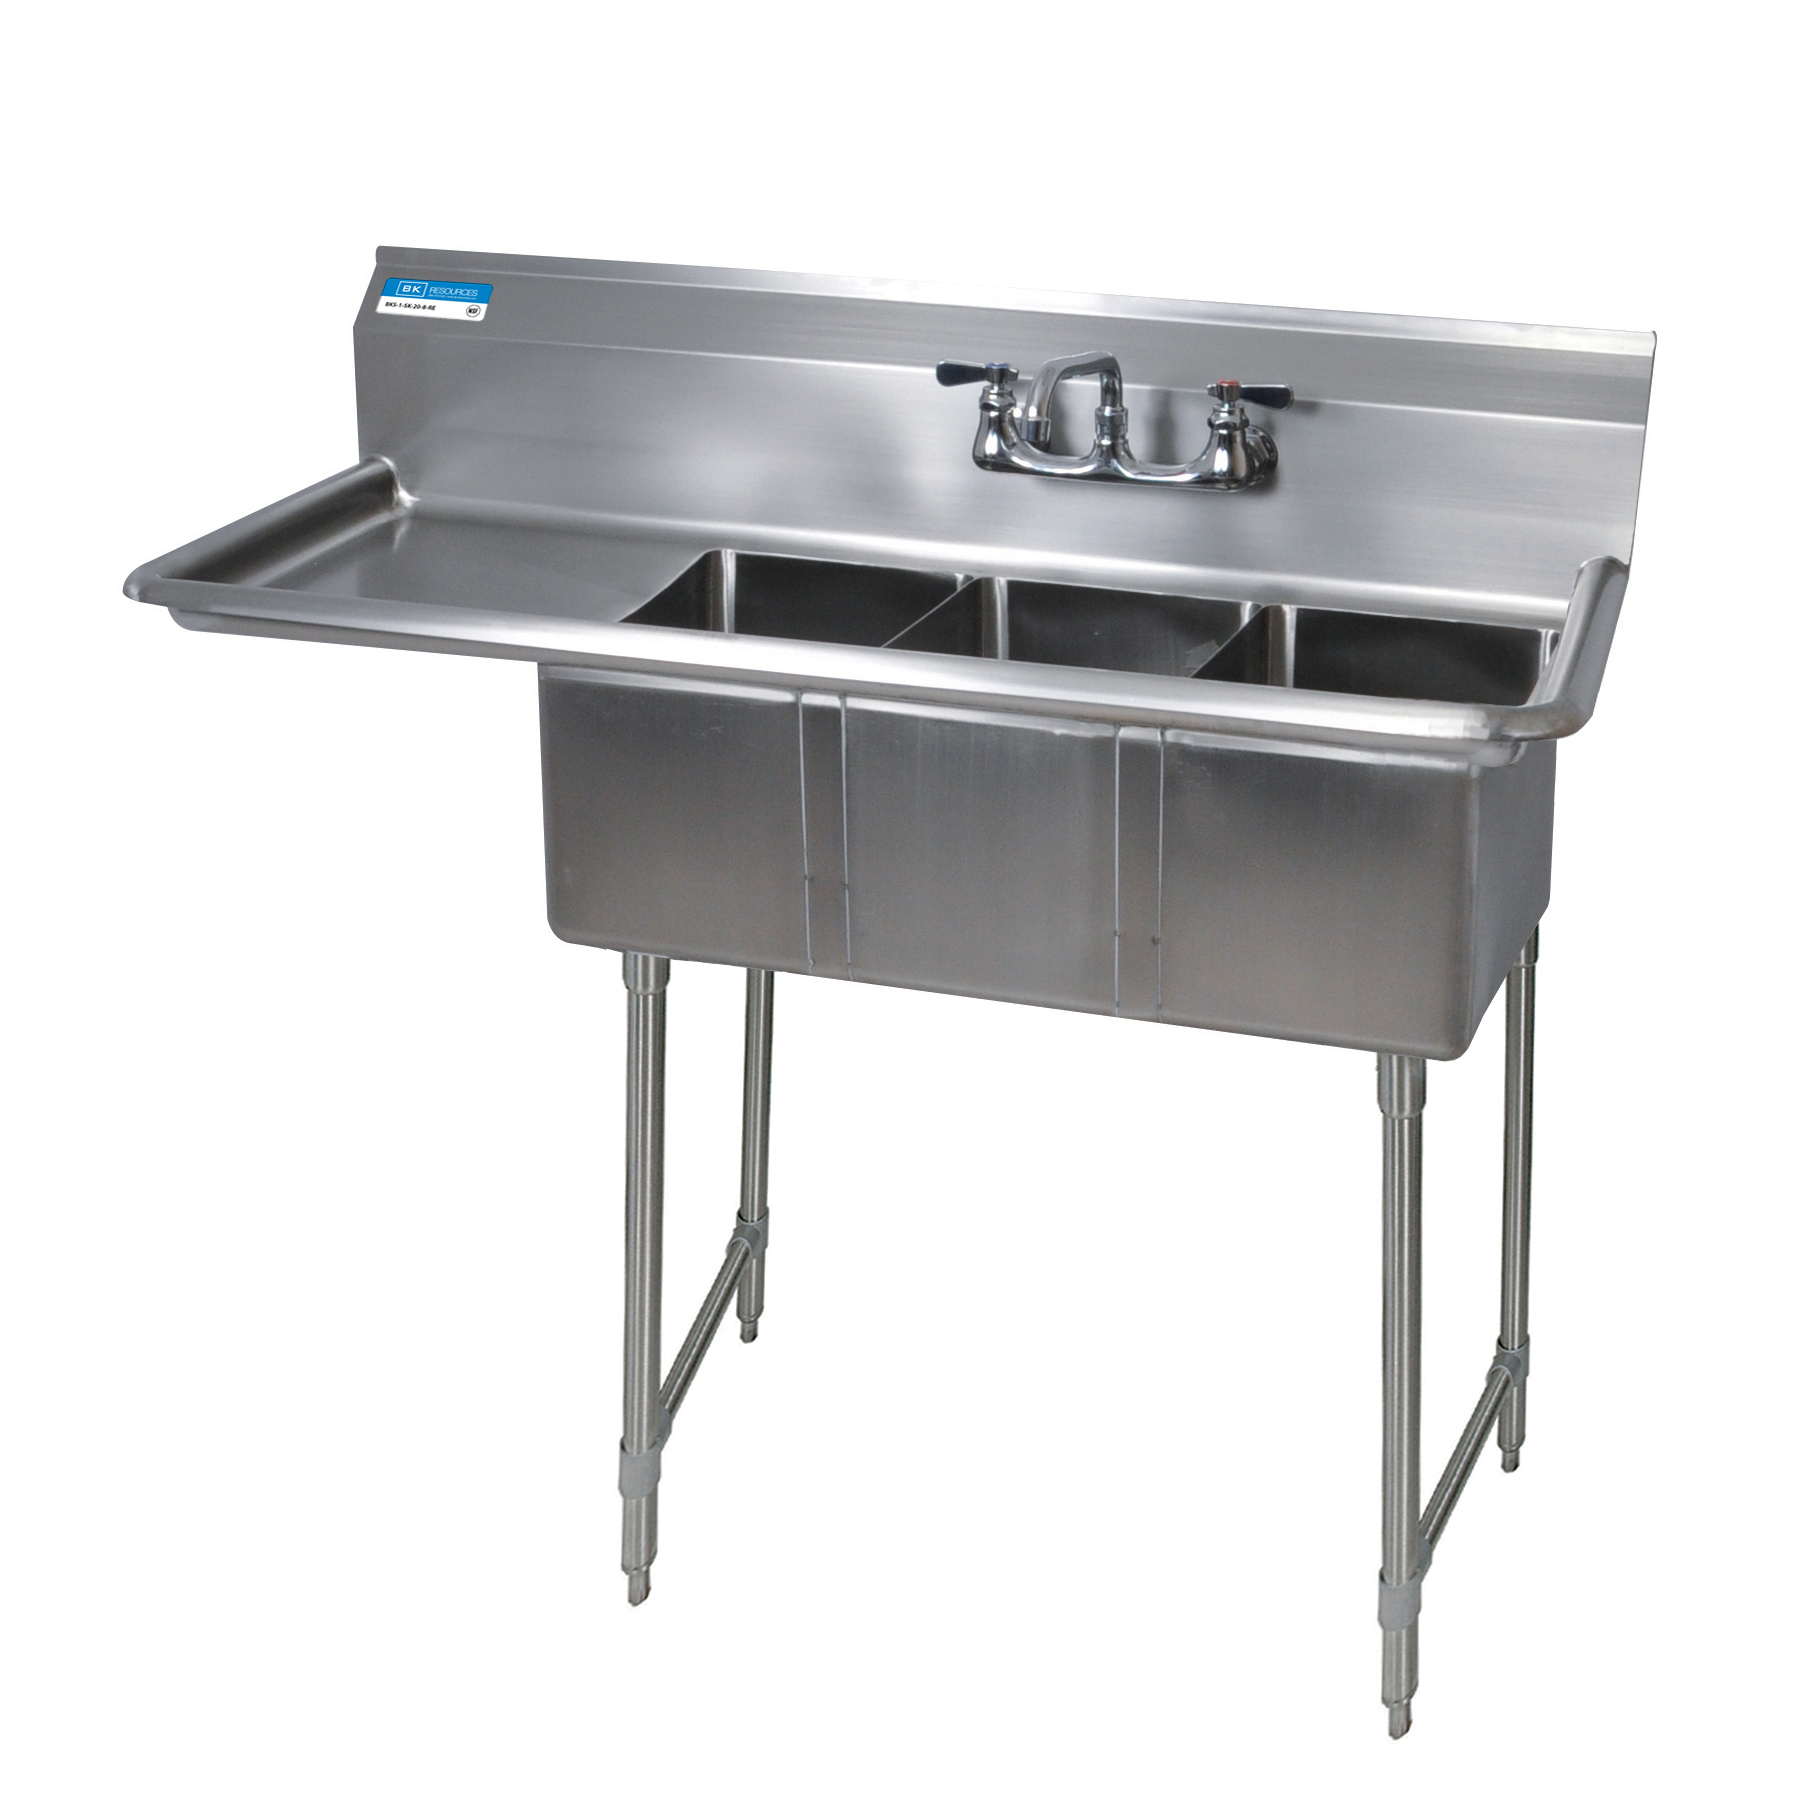 BK Resources BKS-3-1014-10-15LS sink, (3) three compartment